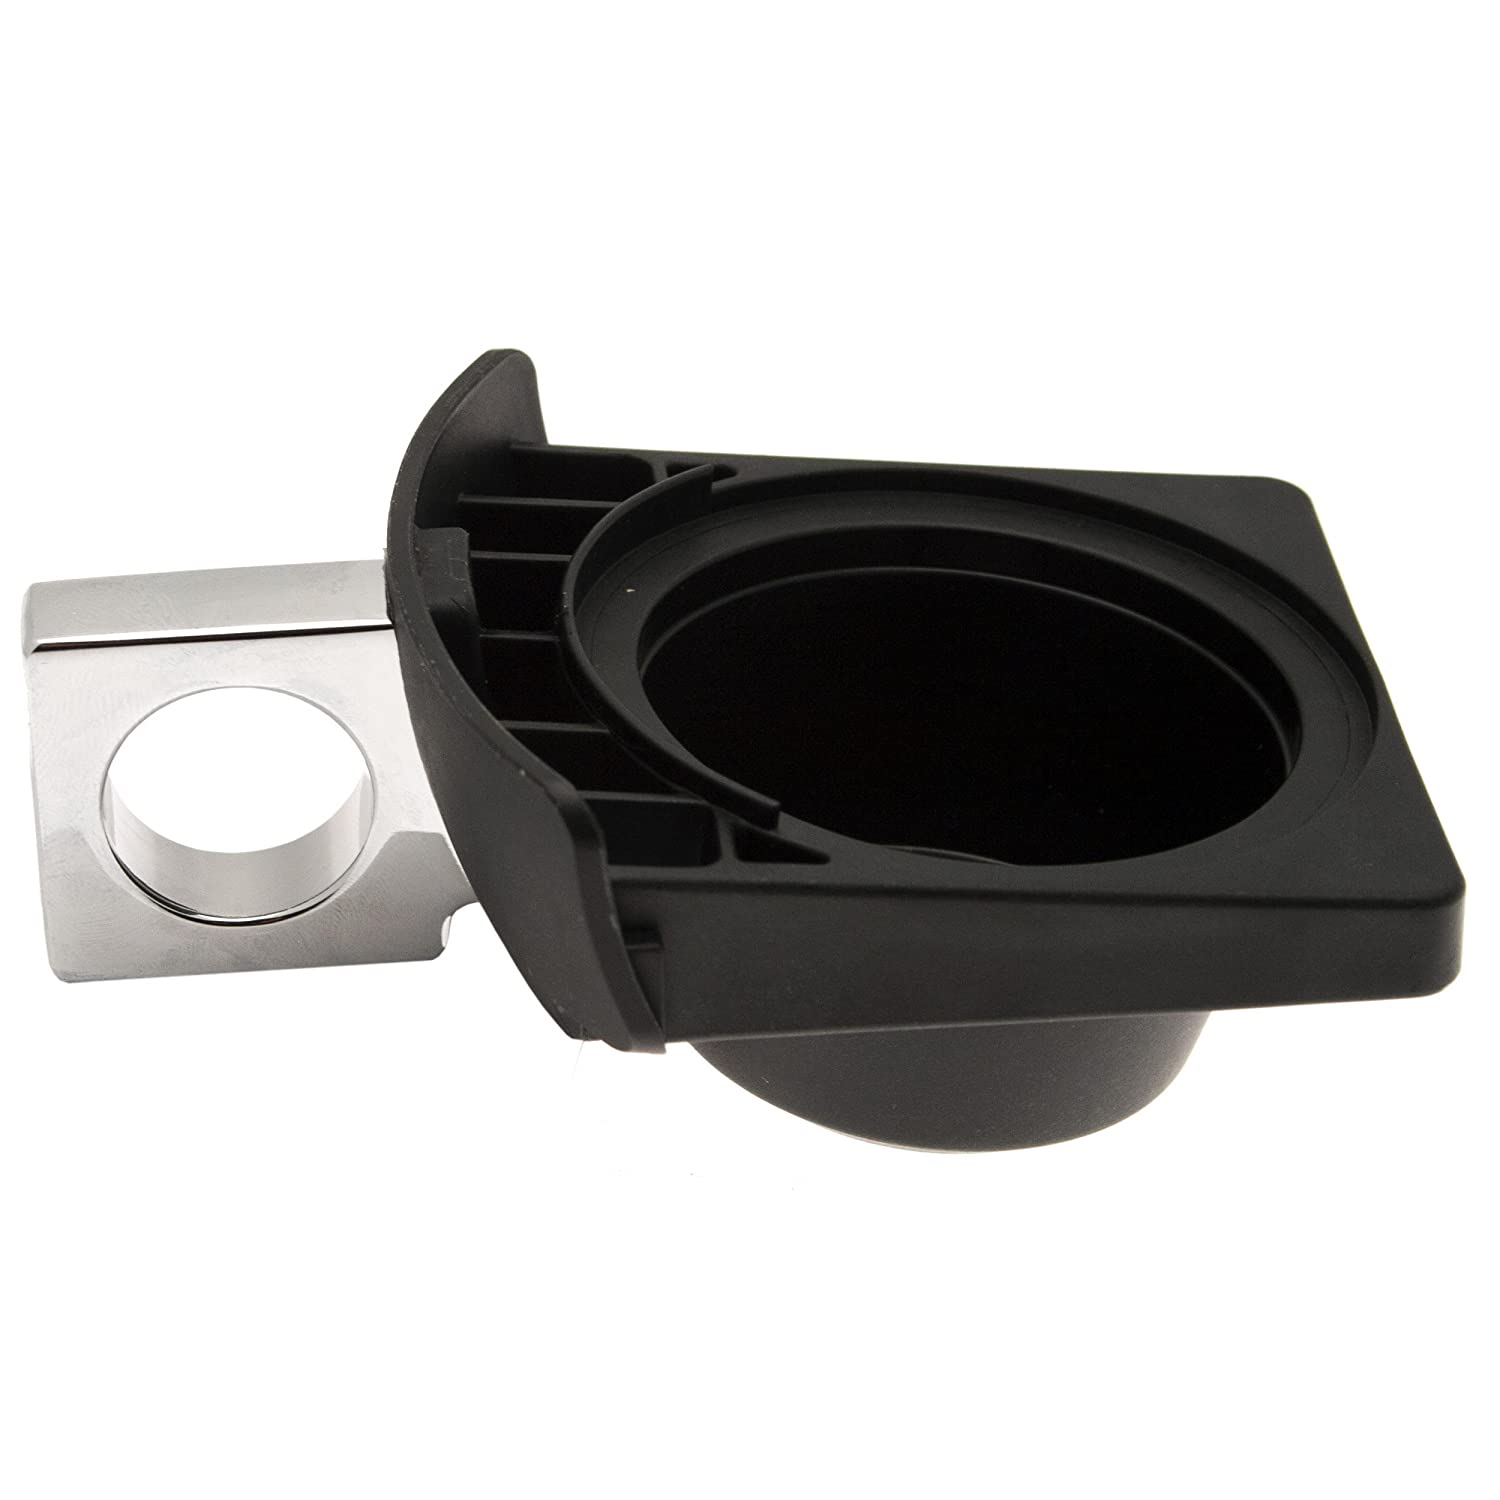 Krups Dolce Gusto Contenitore Portacapsule MS-622380 per Melody II KP 21XX